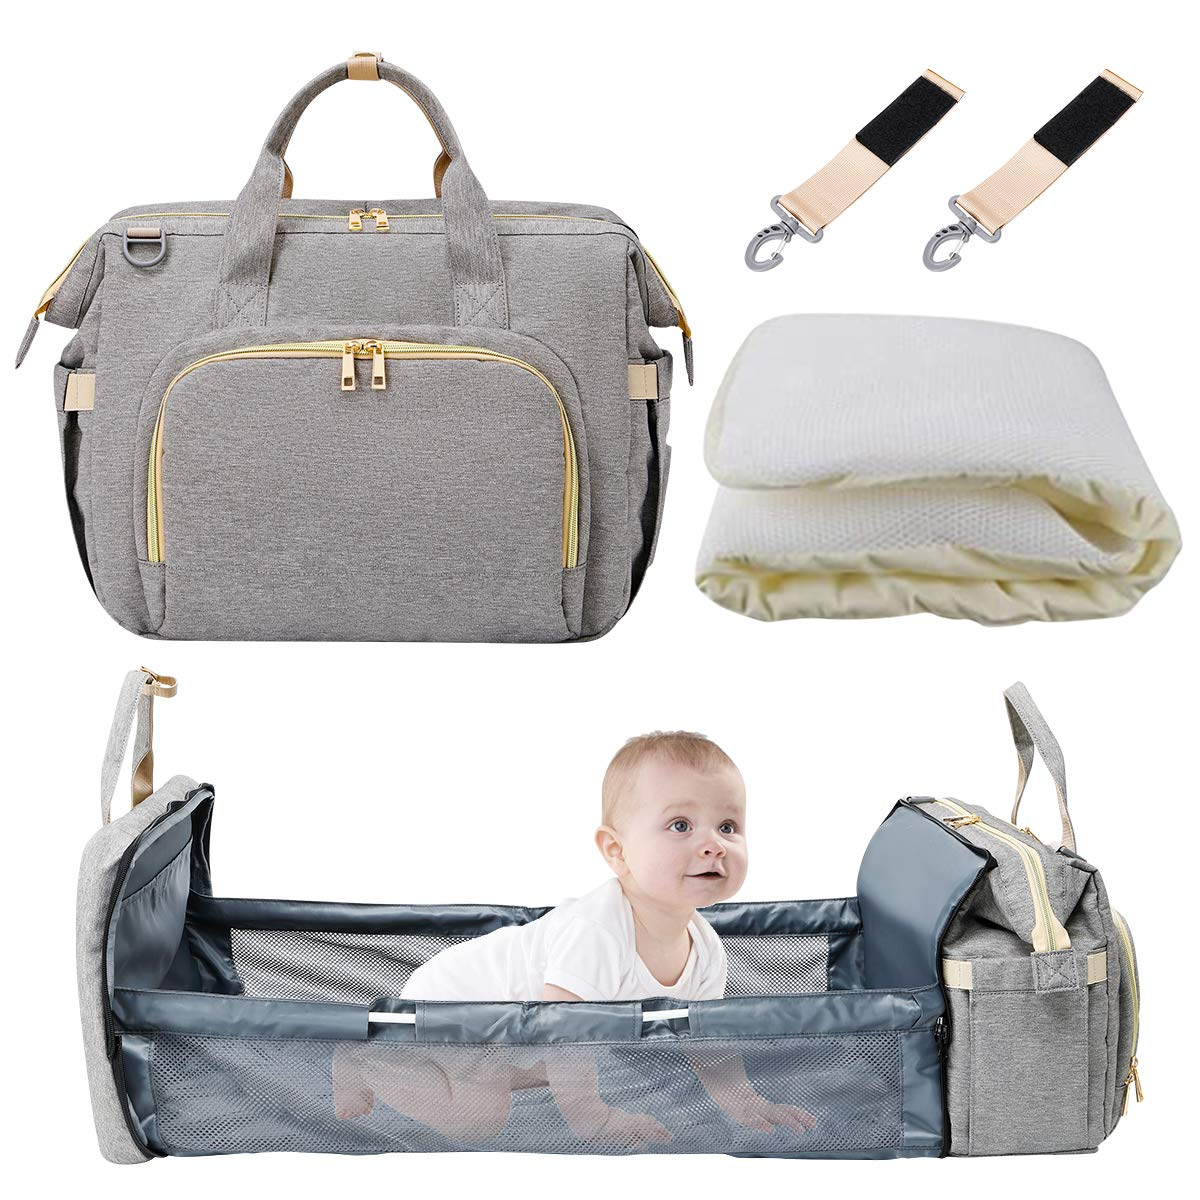 Diaper Bag Backpack Waterproof with Folding Crib, Taykoo Large Multi-Functional Travel Mommy Bag with Stroller Straps & Insulated Pocket & Diapers Changing Cushion (Horizontal Grey)